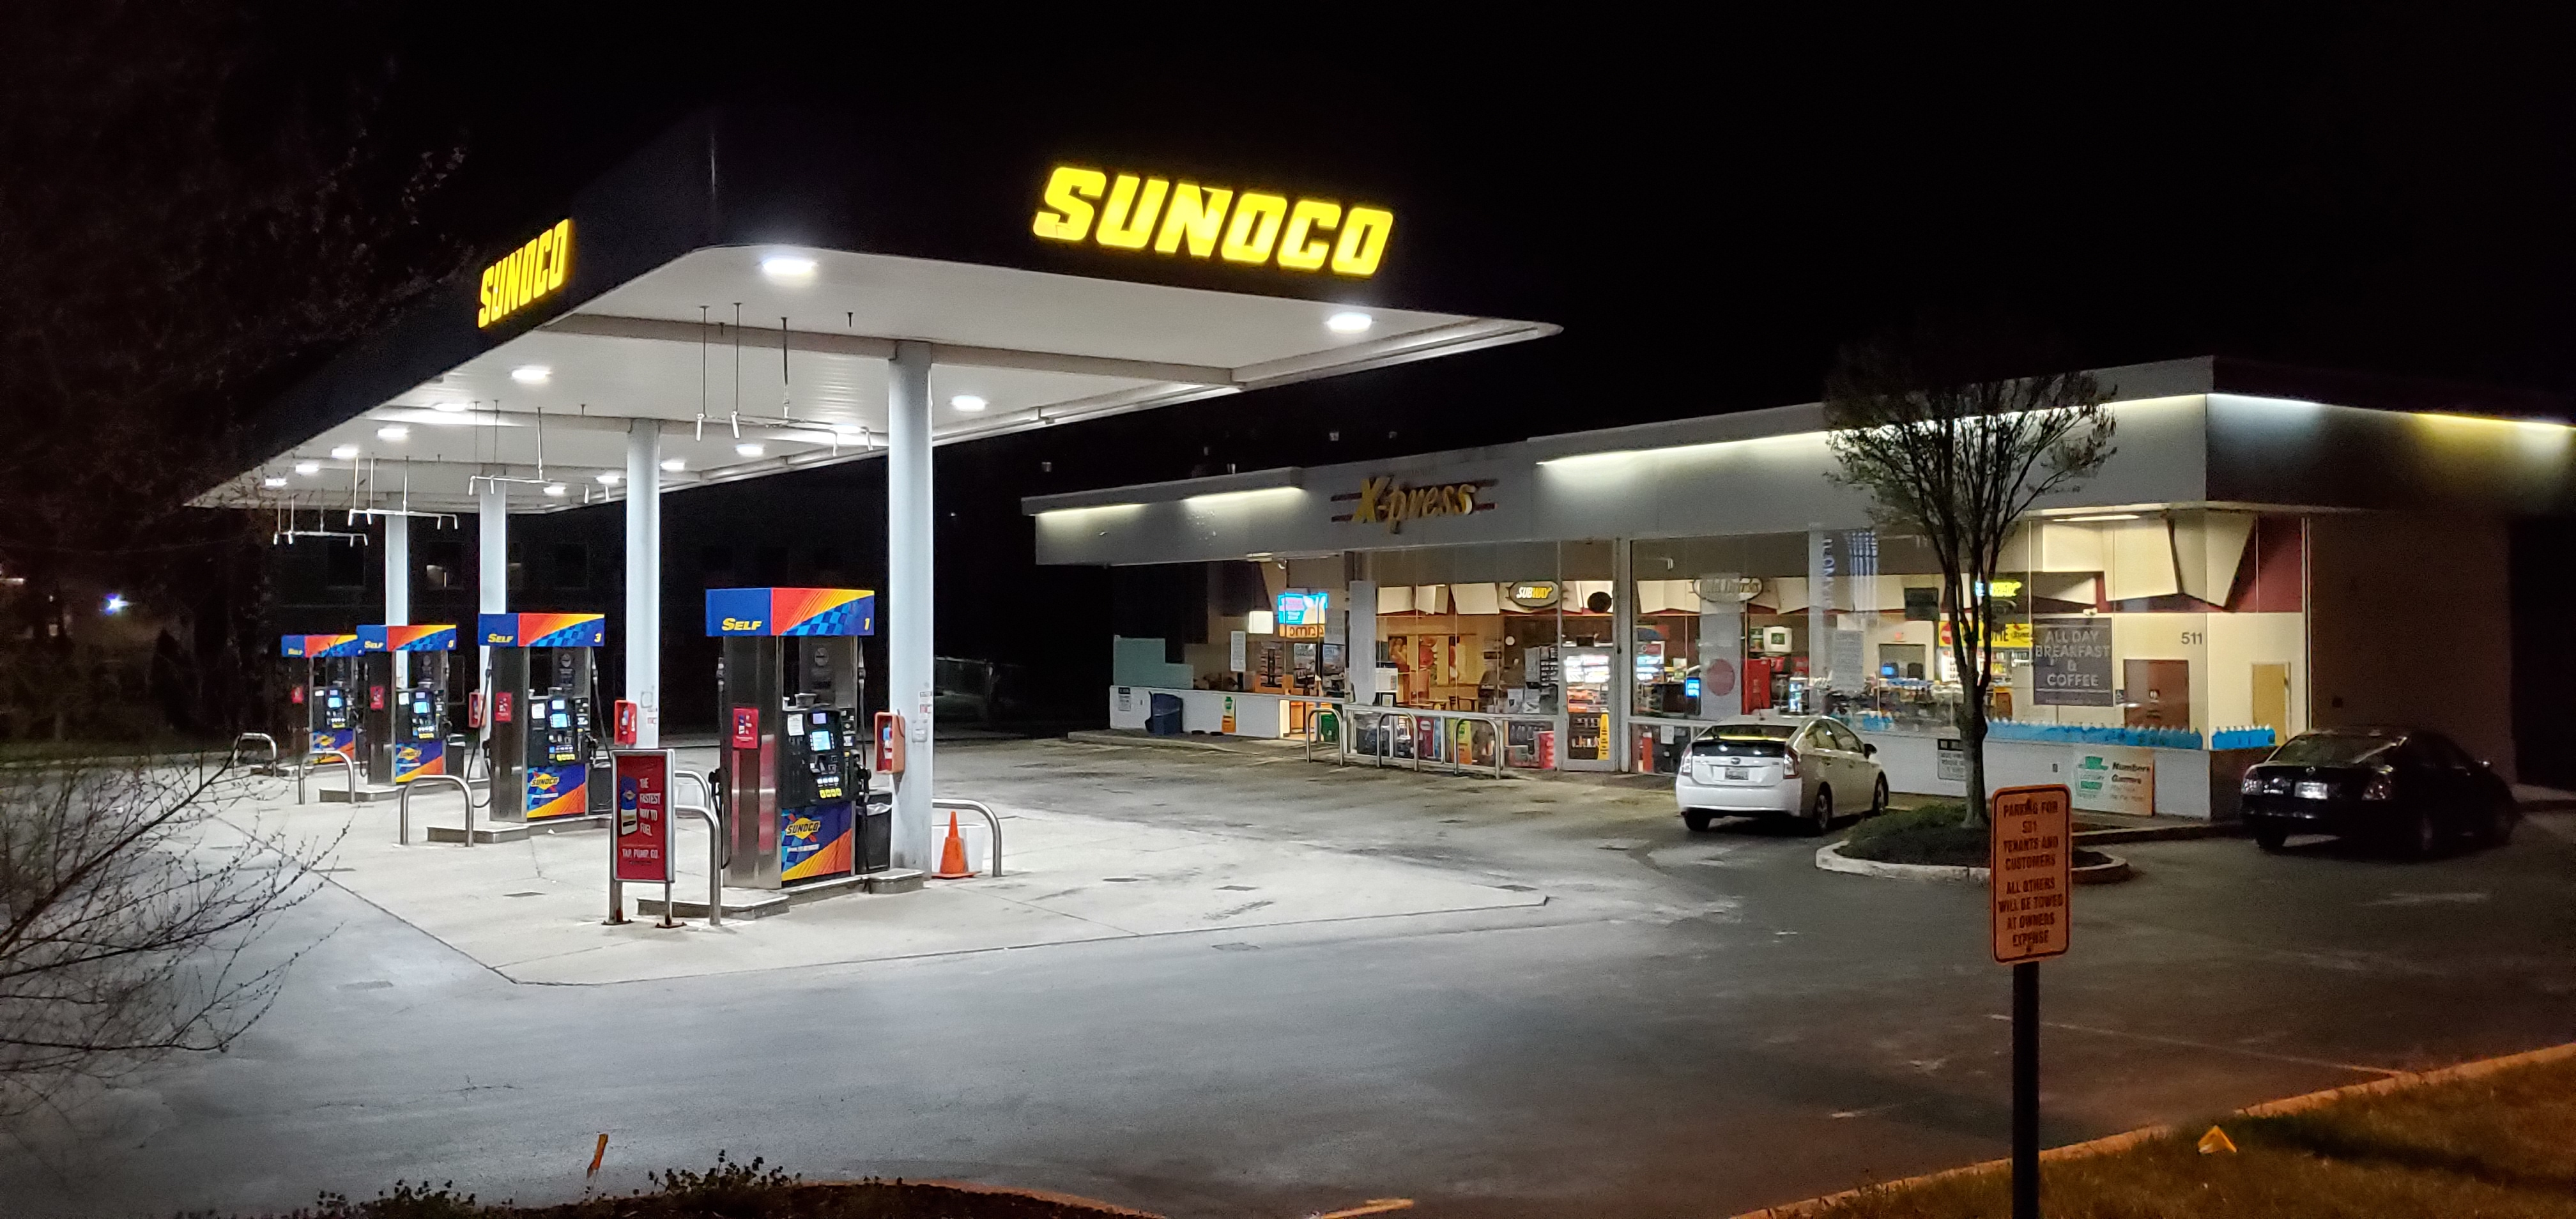 Bitcoin ATM inside Sunoco Gas